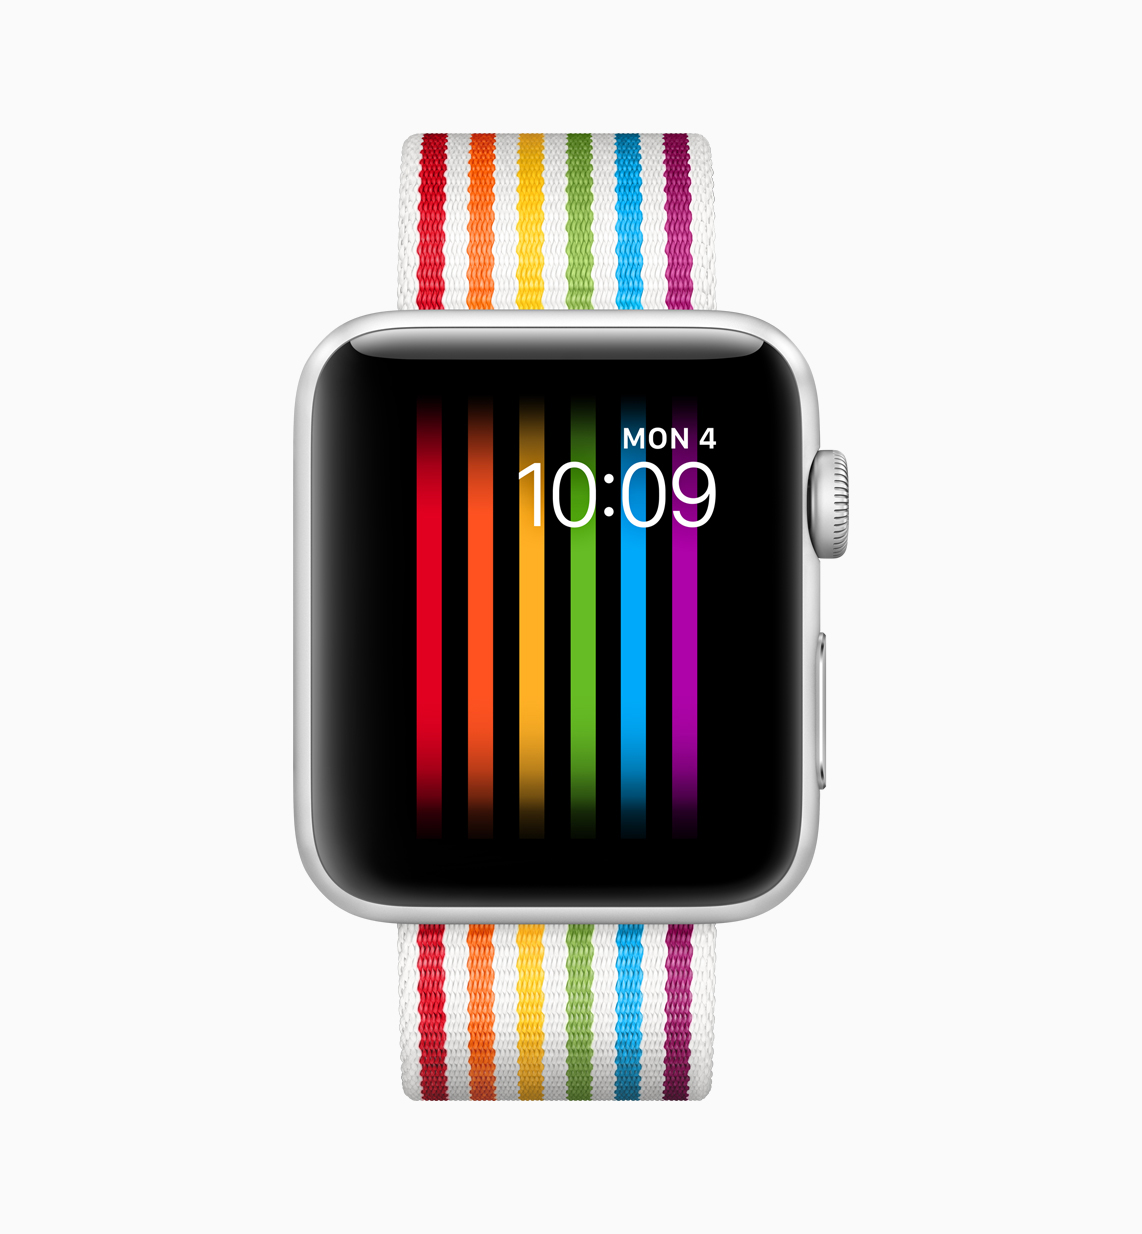 Apple watchOS 5 Pride Face screen 06042018